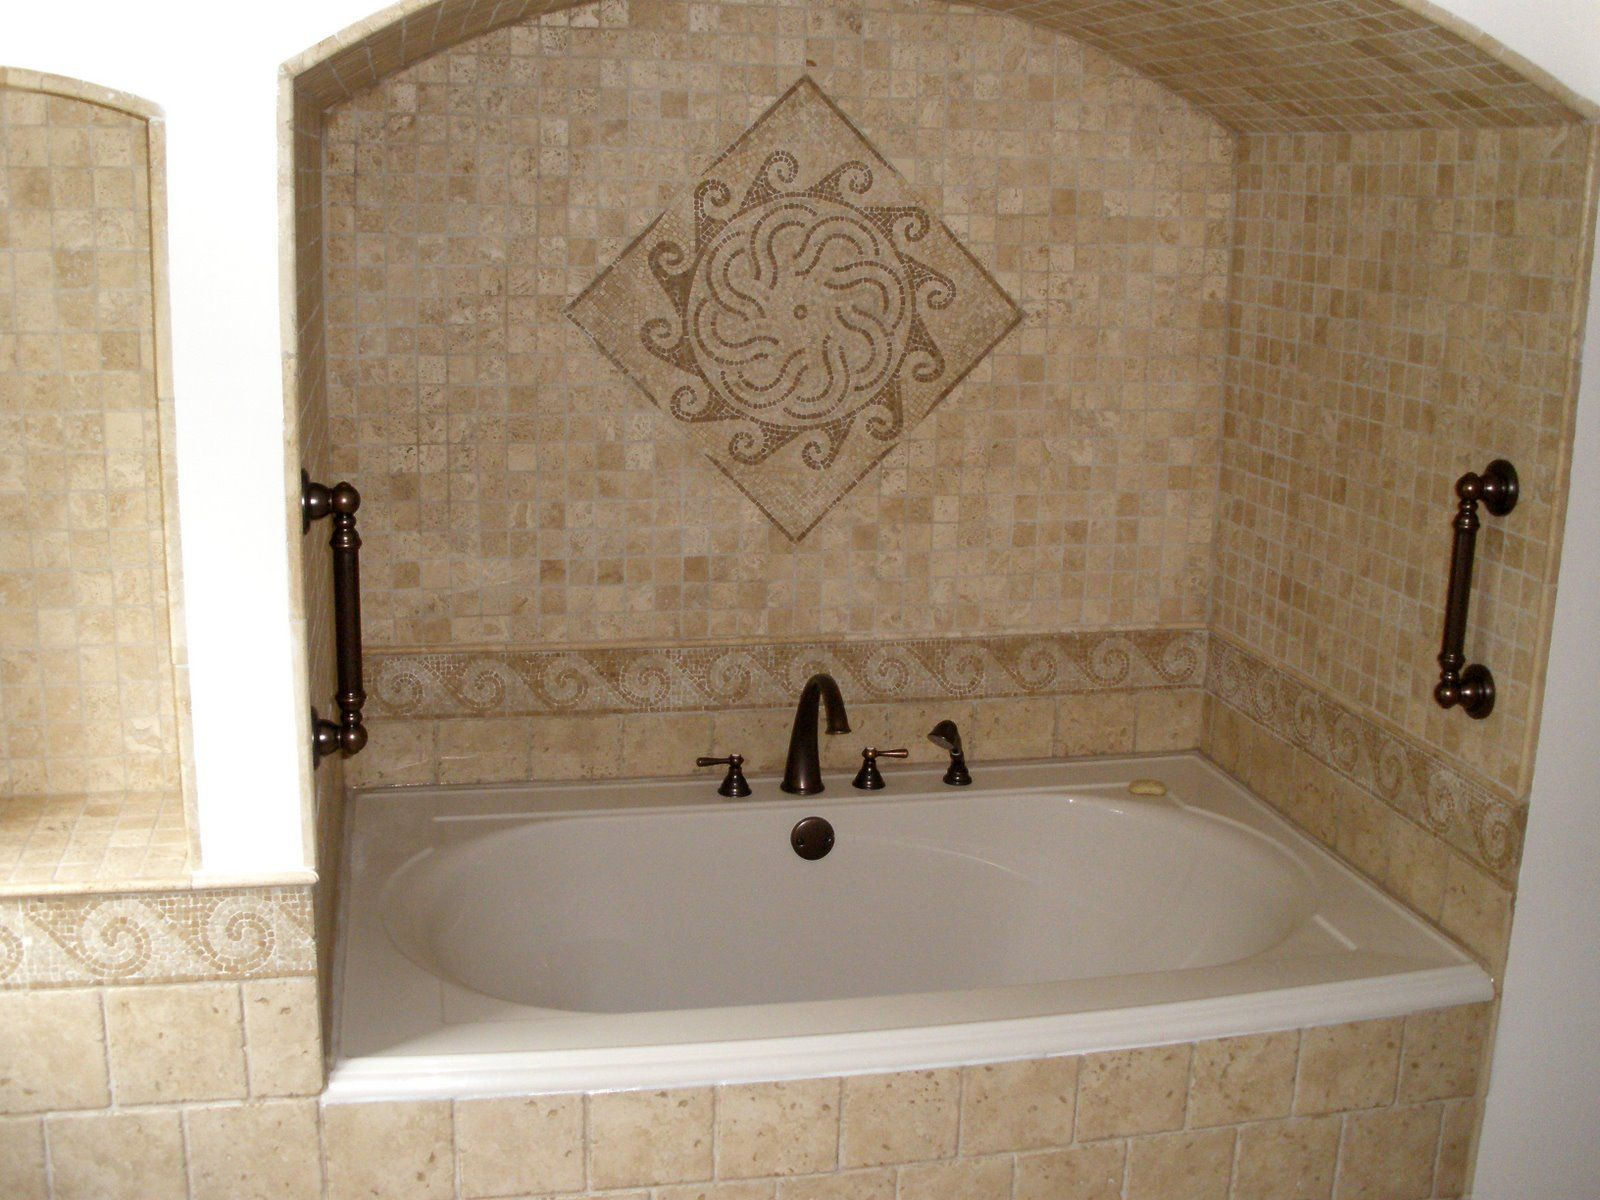 Tile Choices For Small Bathrooms Options Porcelain Floor Slate - Bathtub options small bathroom